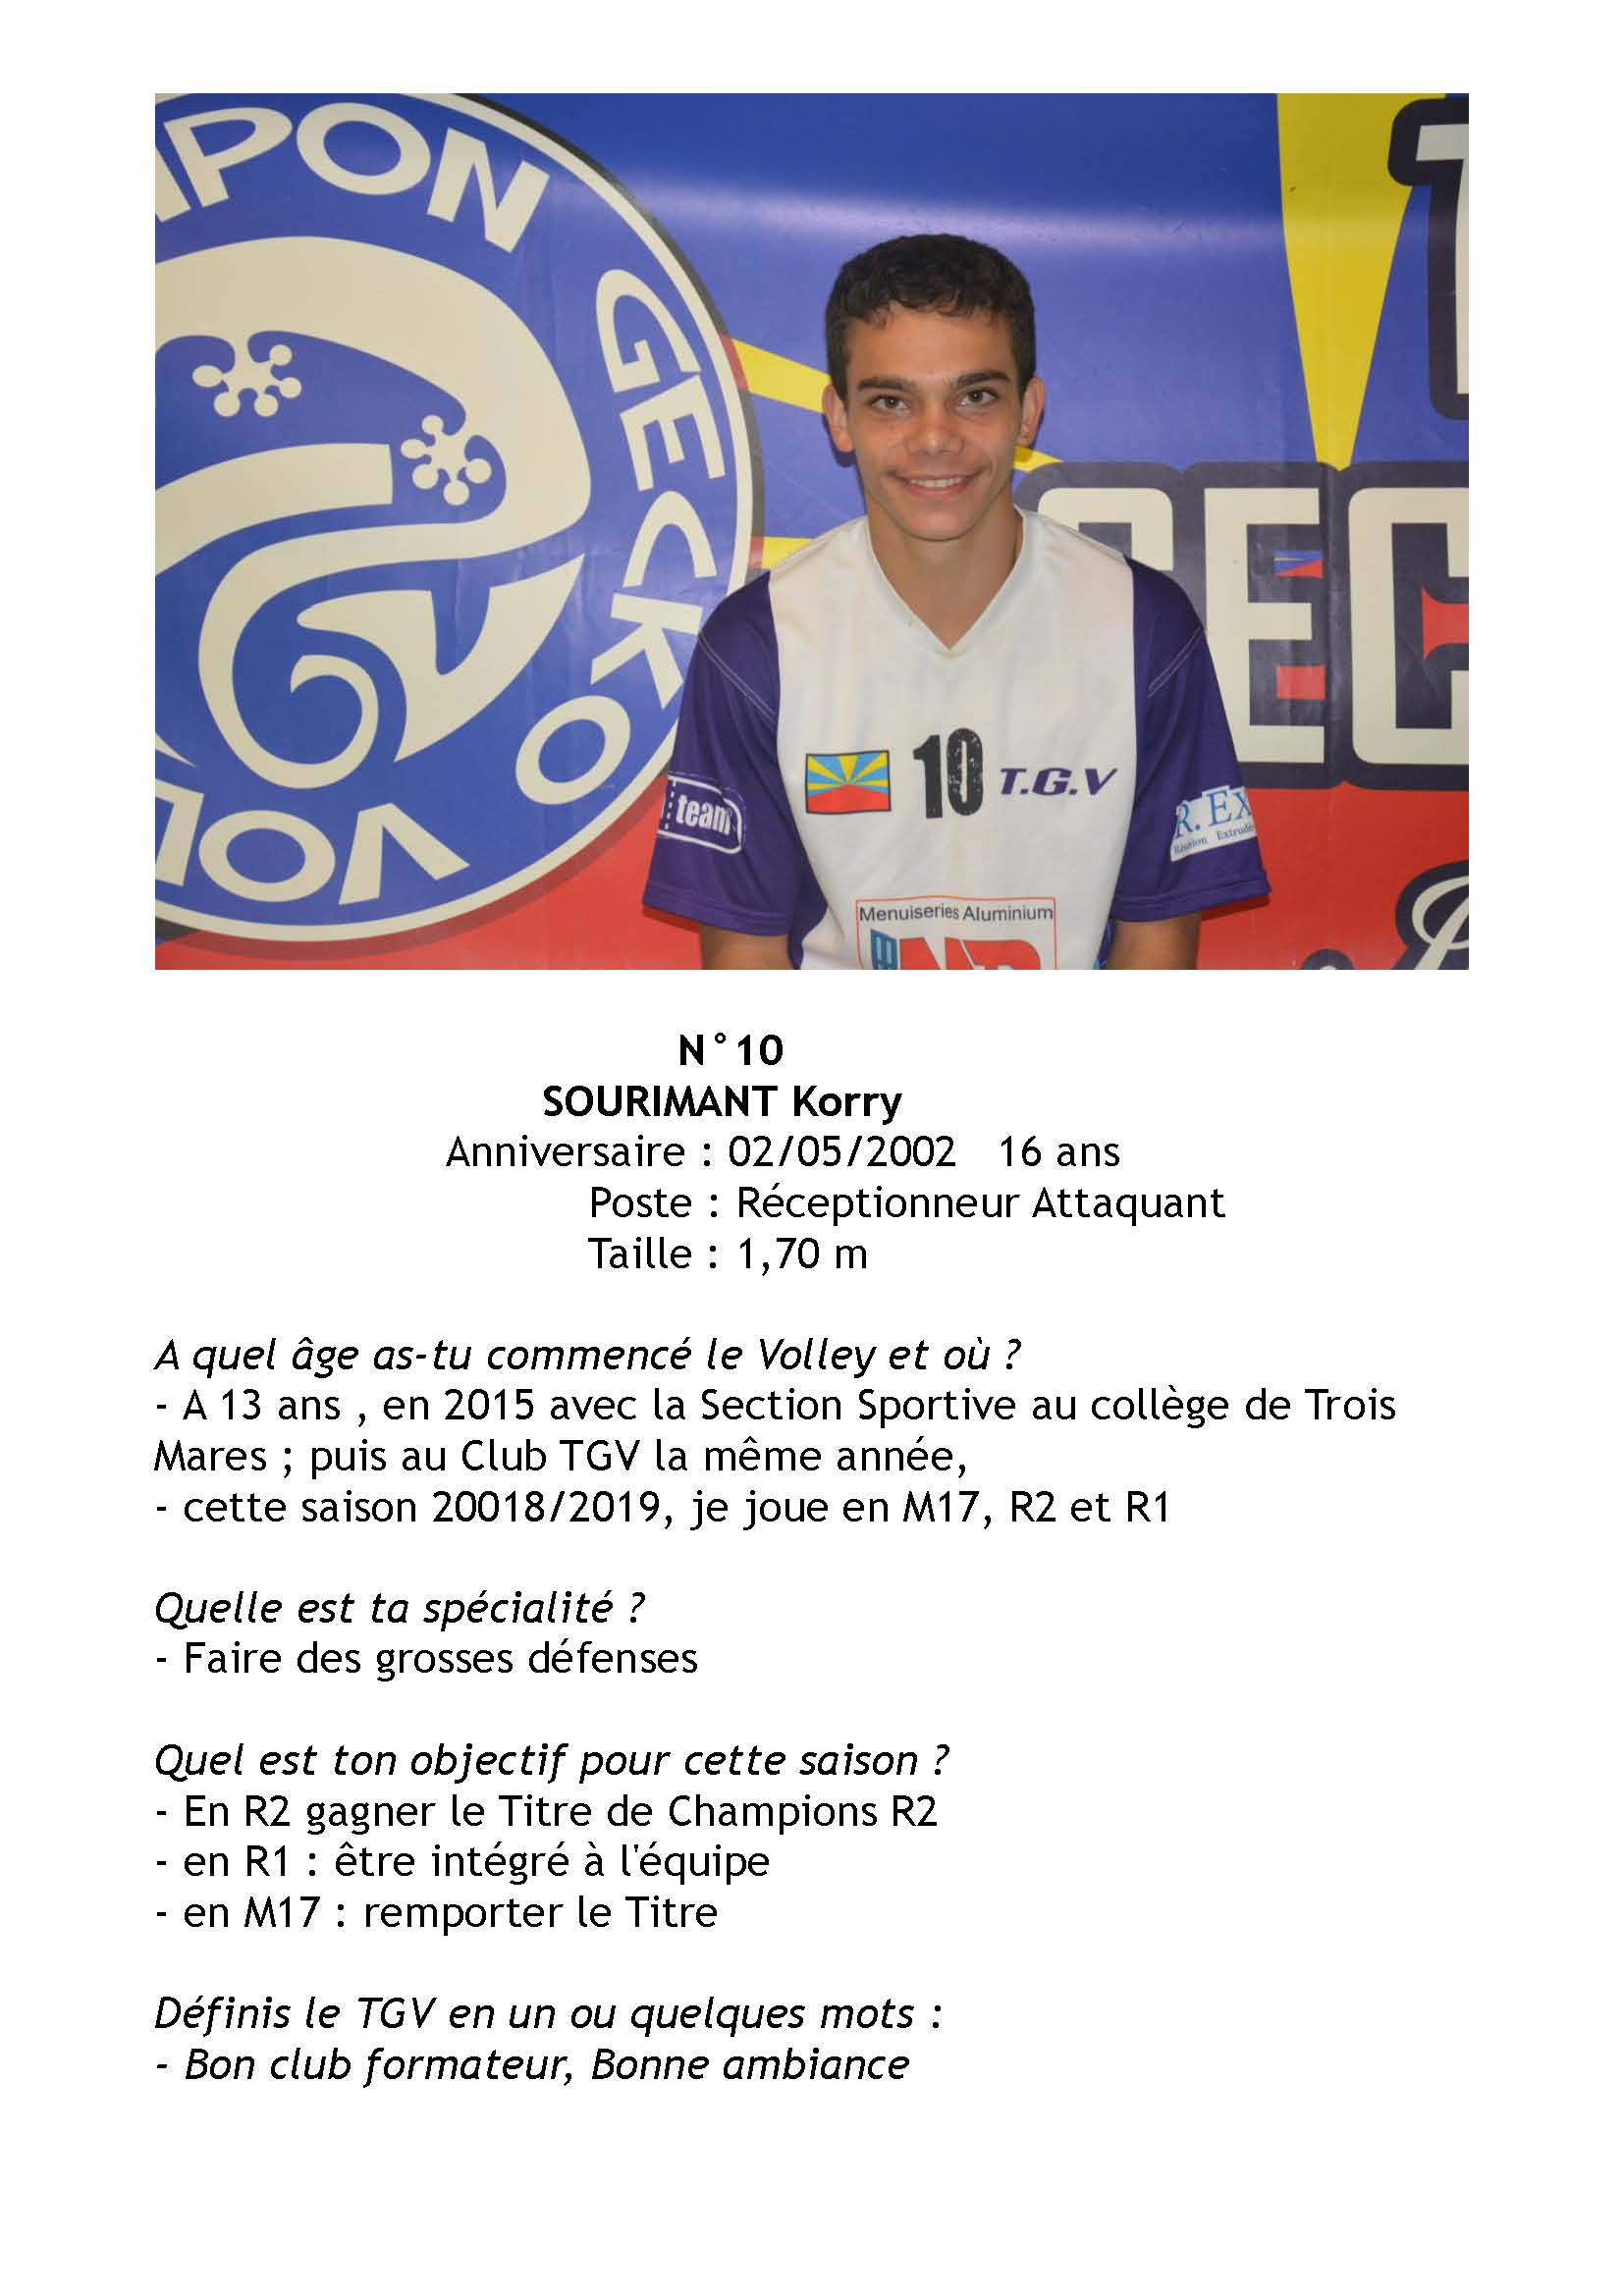 4_2_01 2018-19 10 Korry Sourimant